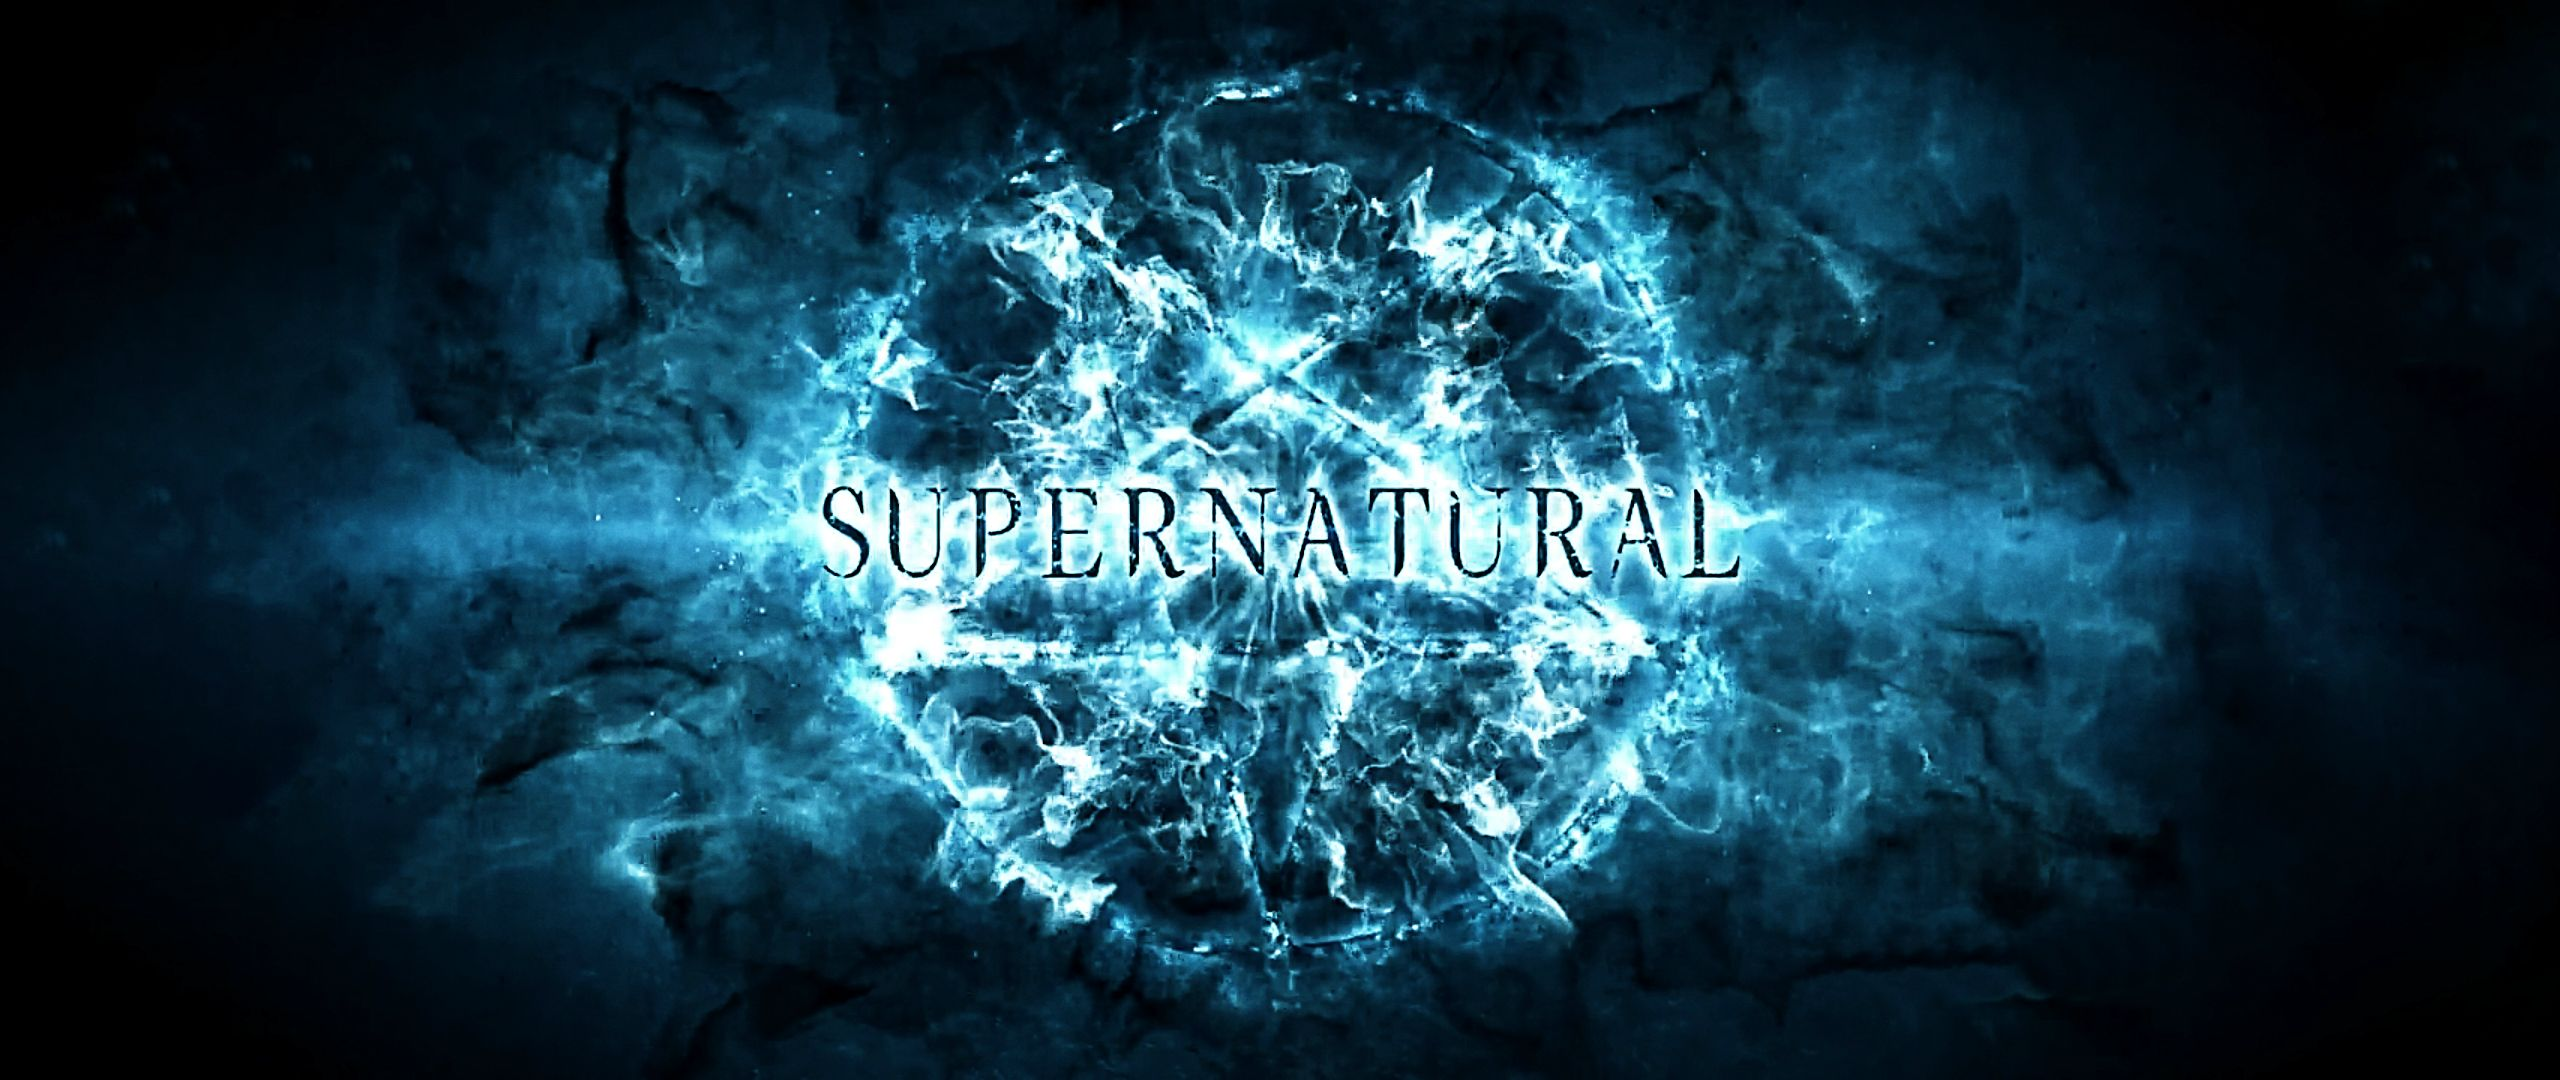 Must see Wallpaper Home Screen Supernatural - tumblr_static_eucdbj3c4rkkc8g8sckkowokk  Graphic_626863.jpg